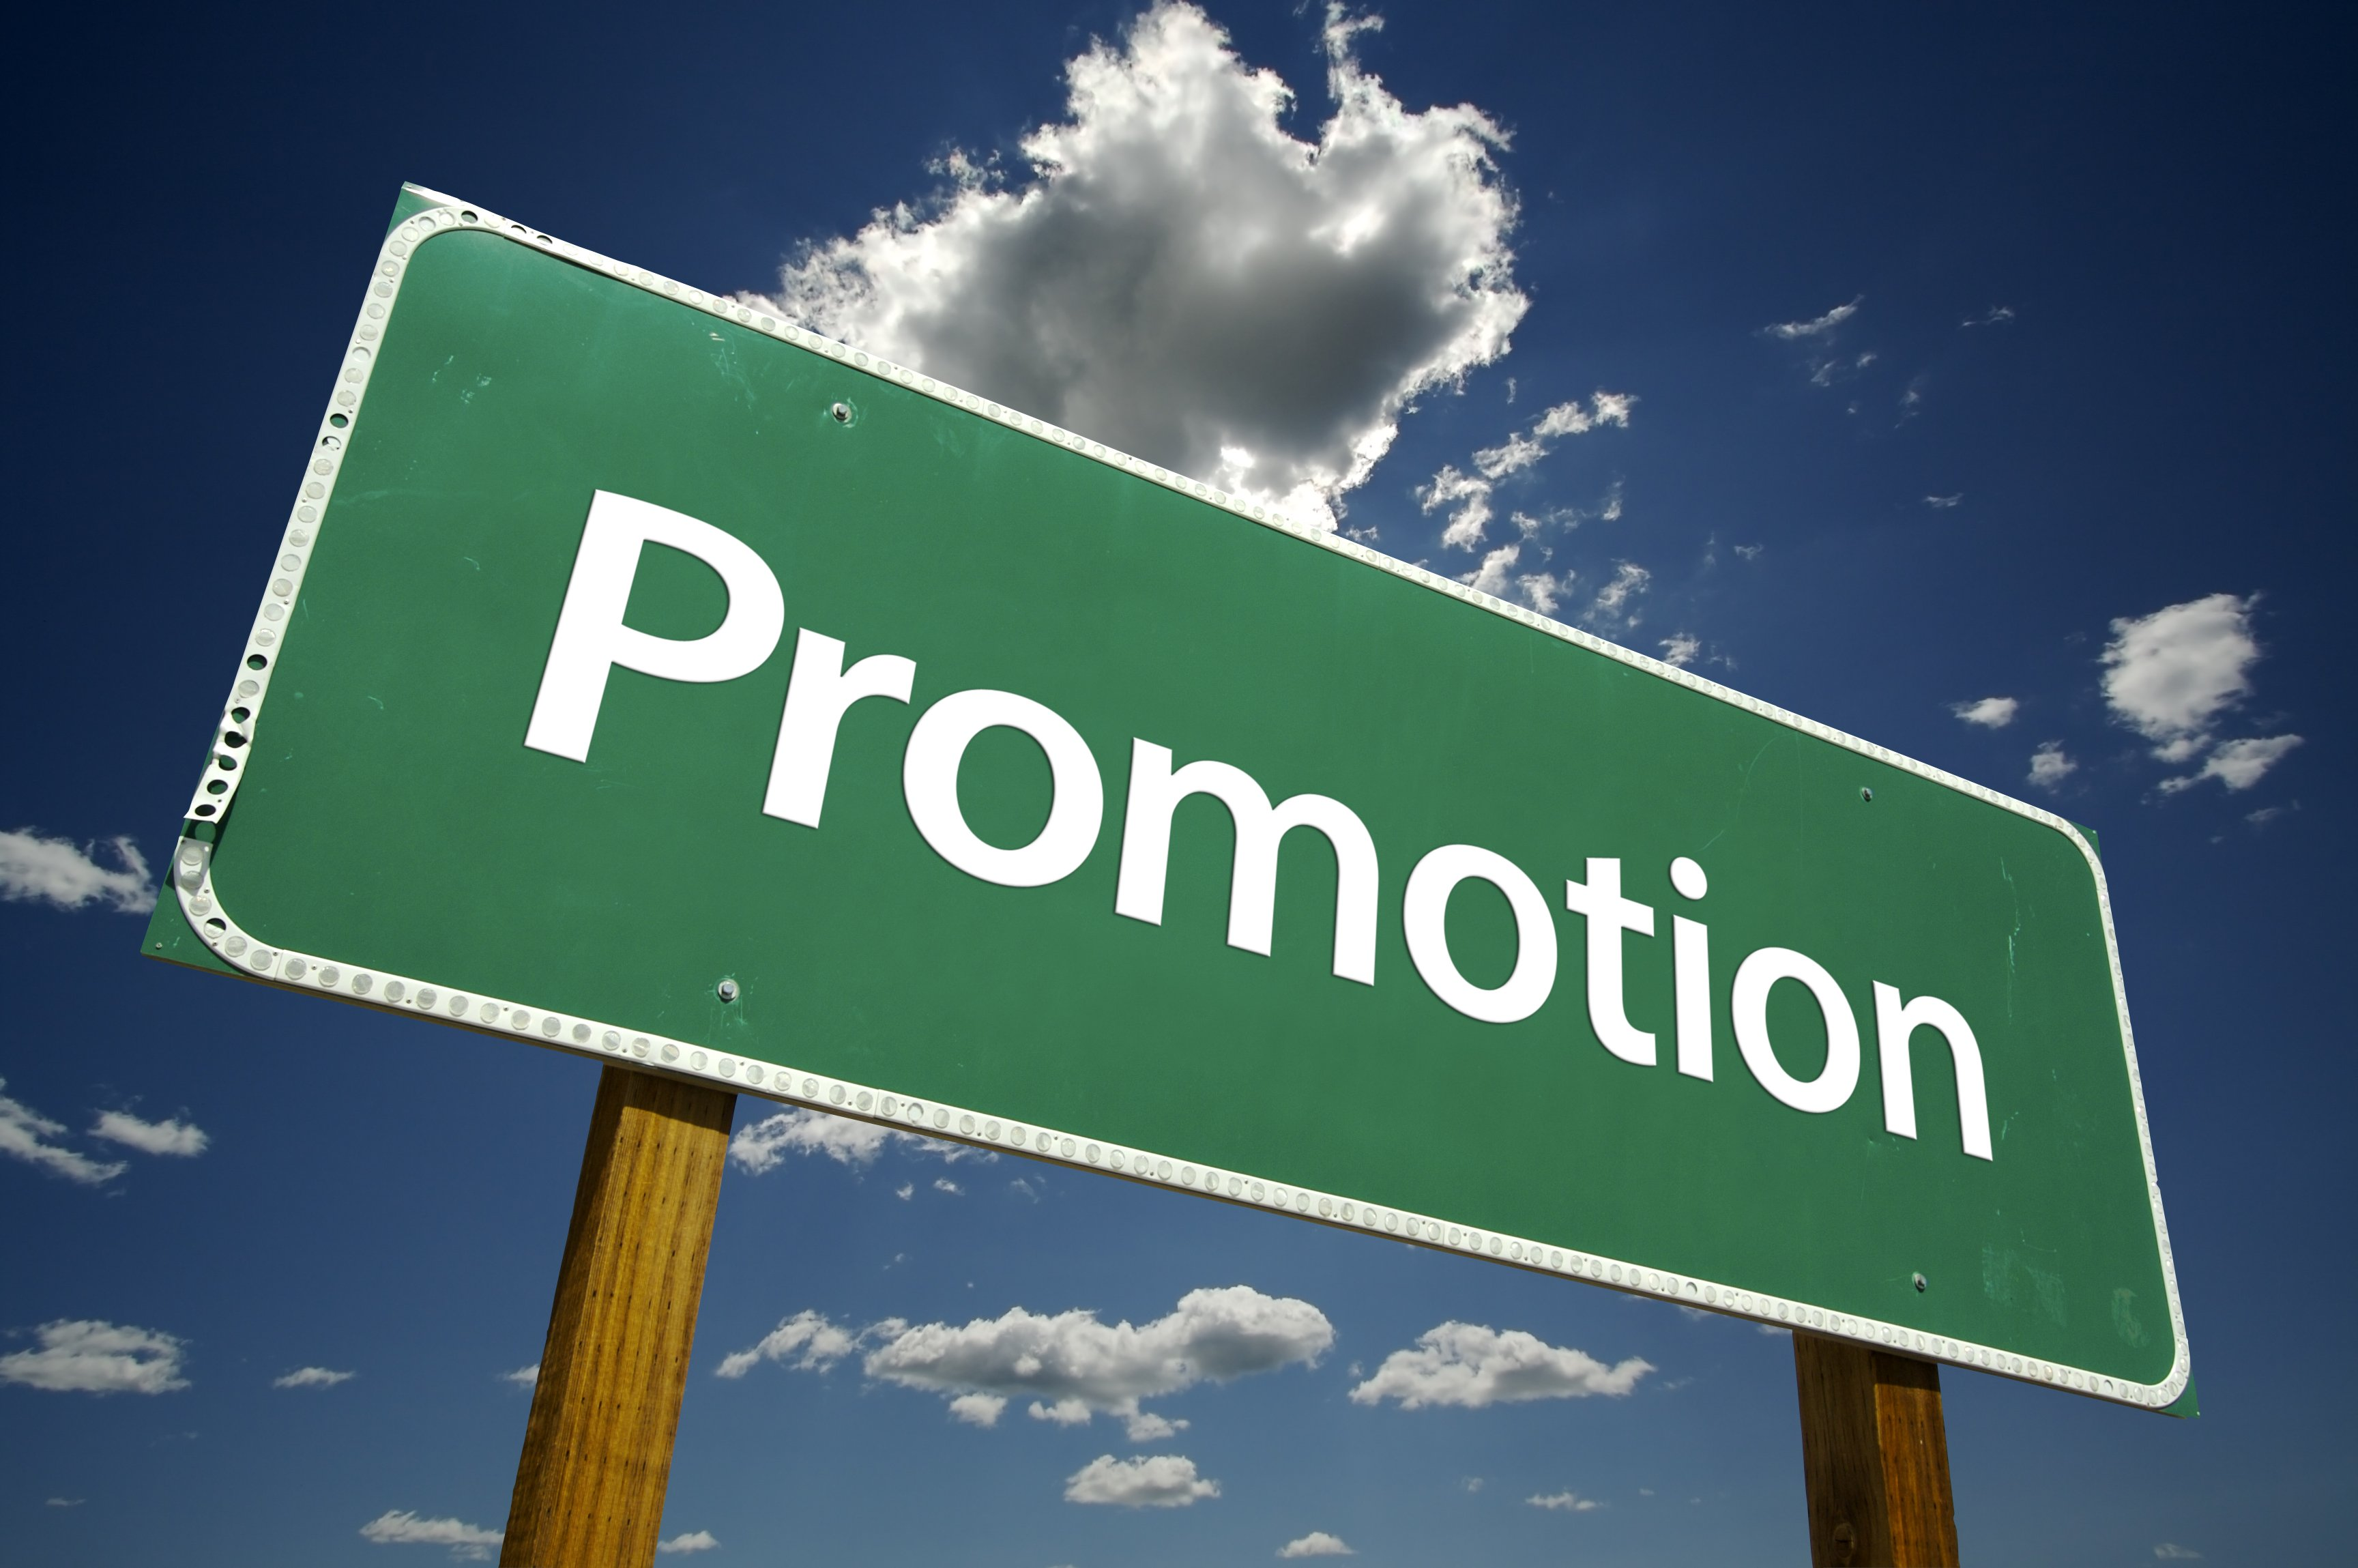 5 Steps To Your Next Promotion